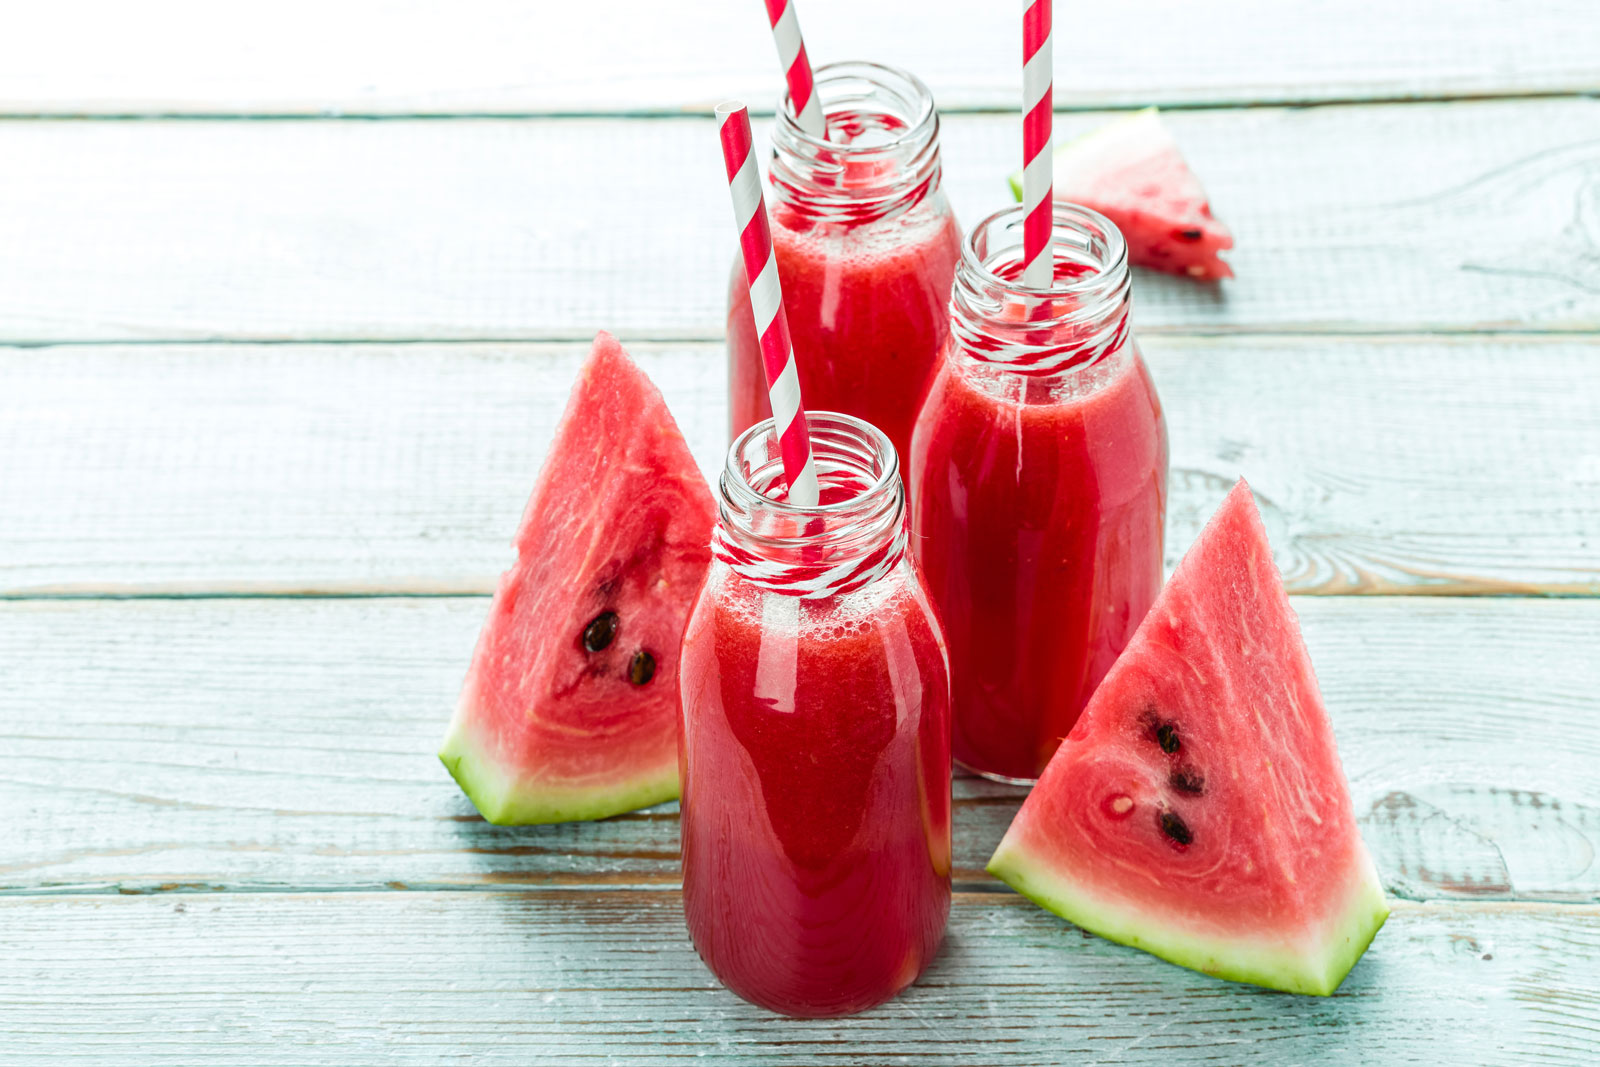 Watermelon Juice | 4 Organic Juicing Recipes You Can Easily Make At Home